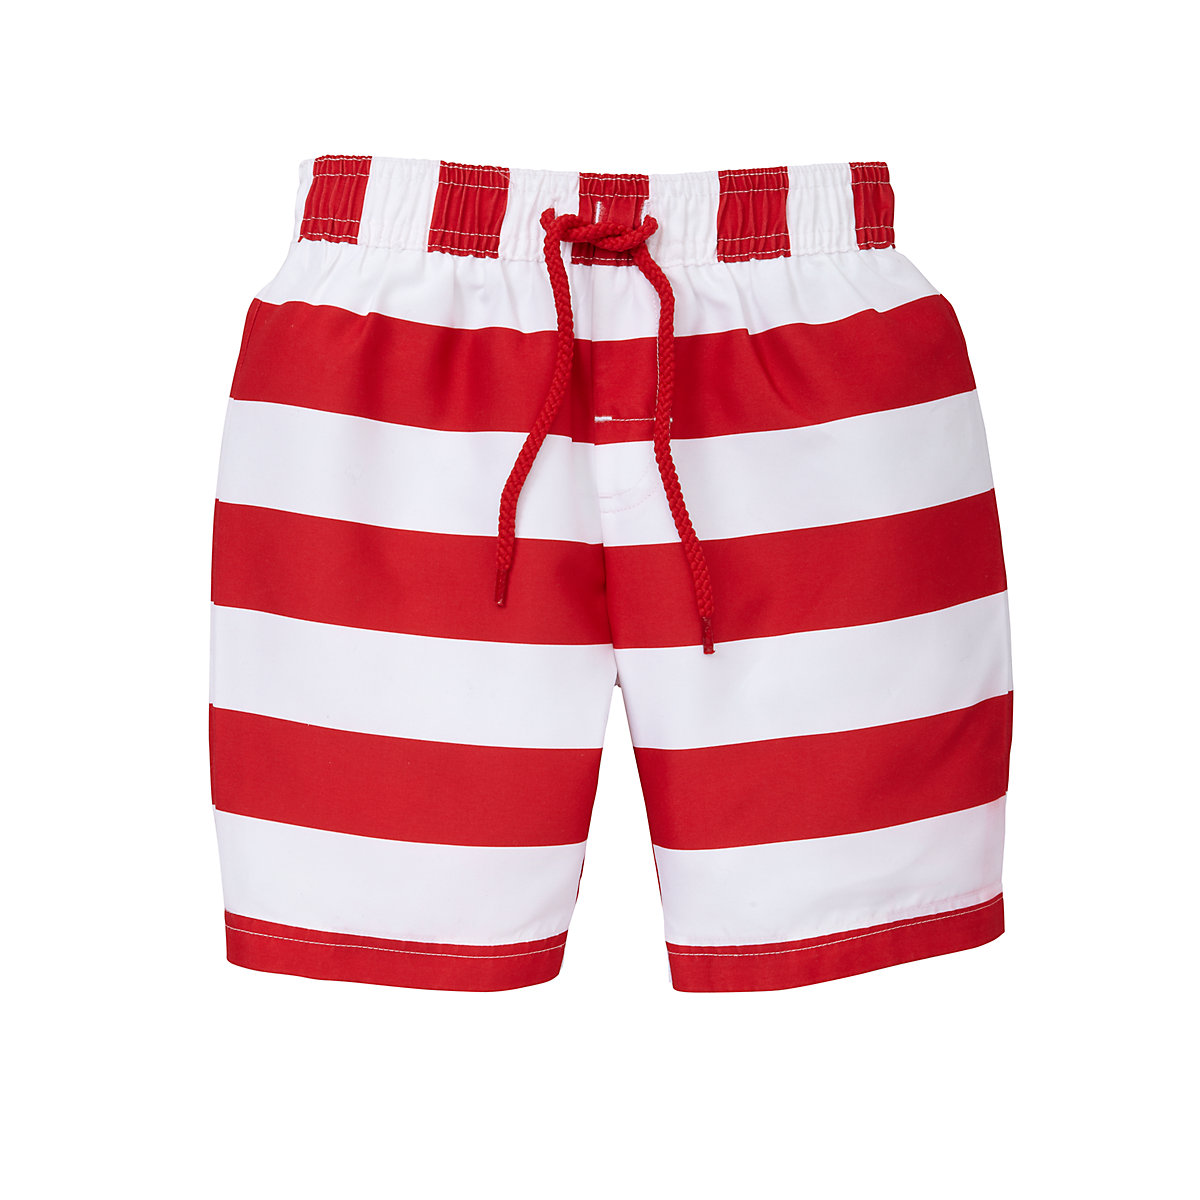 Mothercare Red and White Swimming Trunks - Swimming Gifts